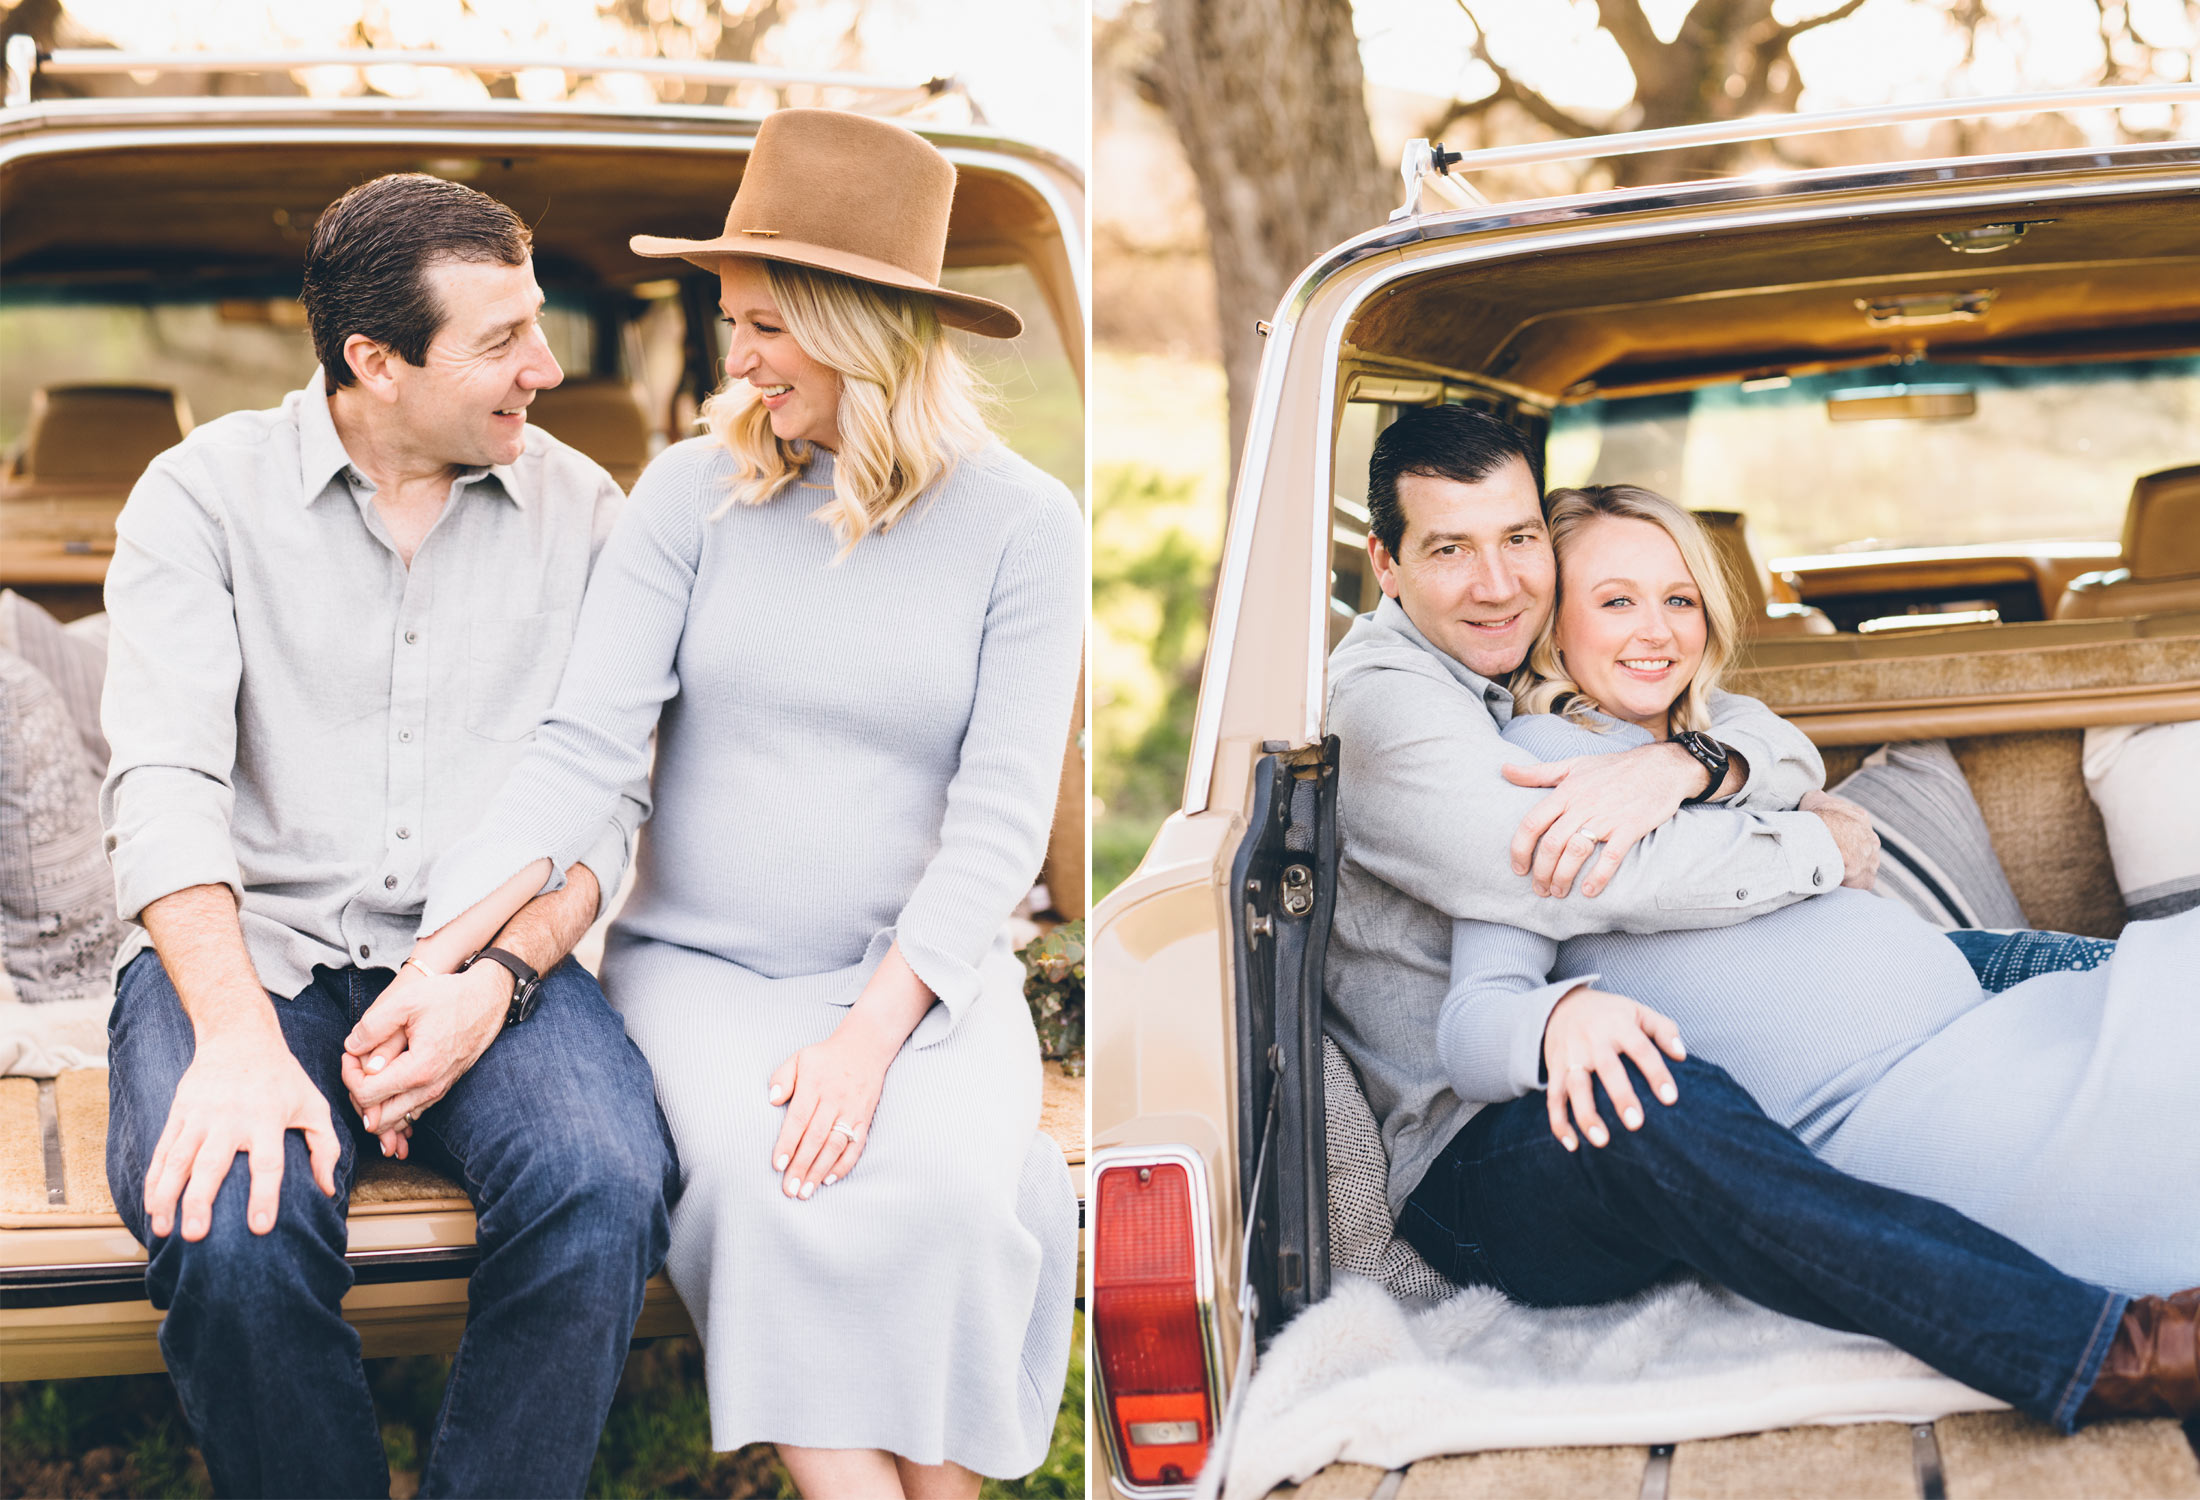 unique-maternity-photo-idea-with-classic-car.jpg